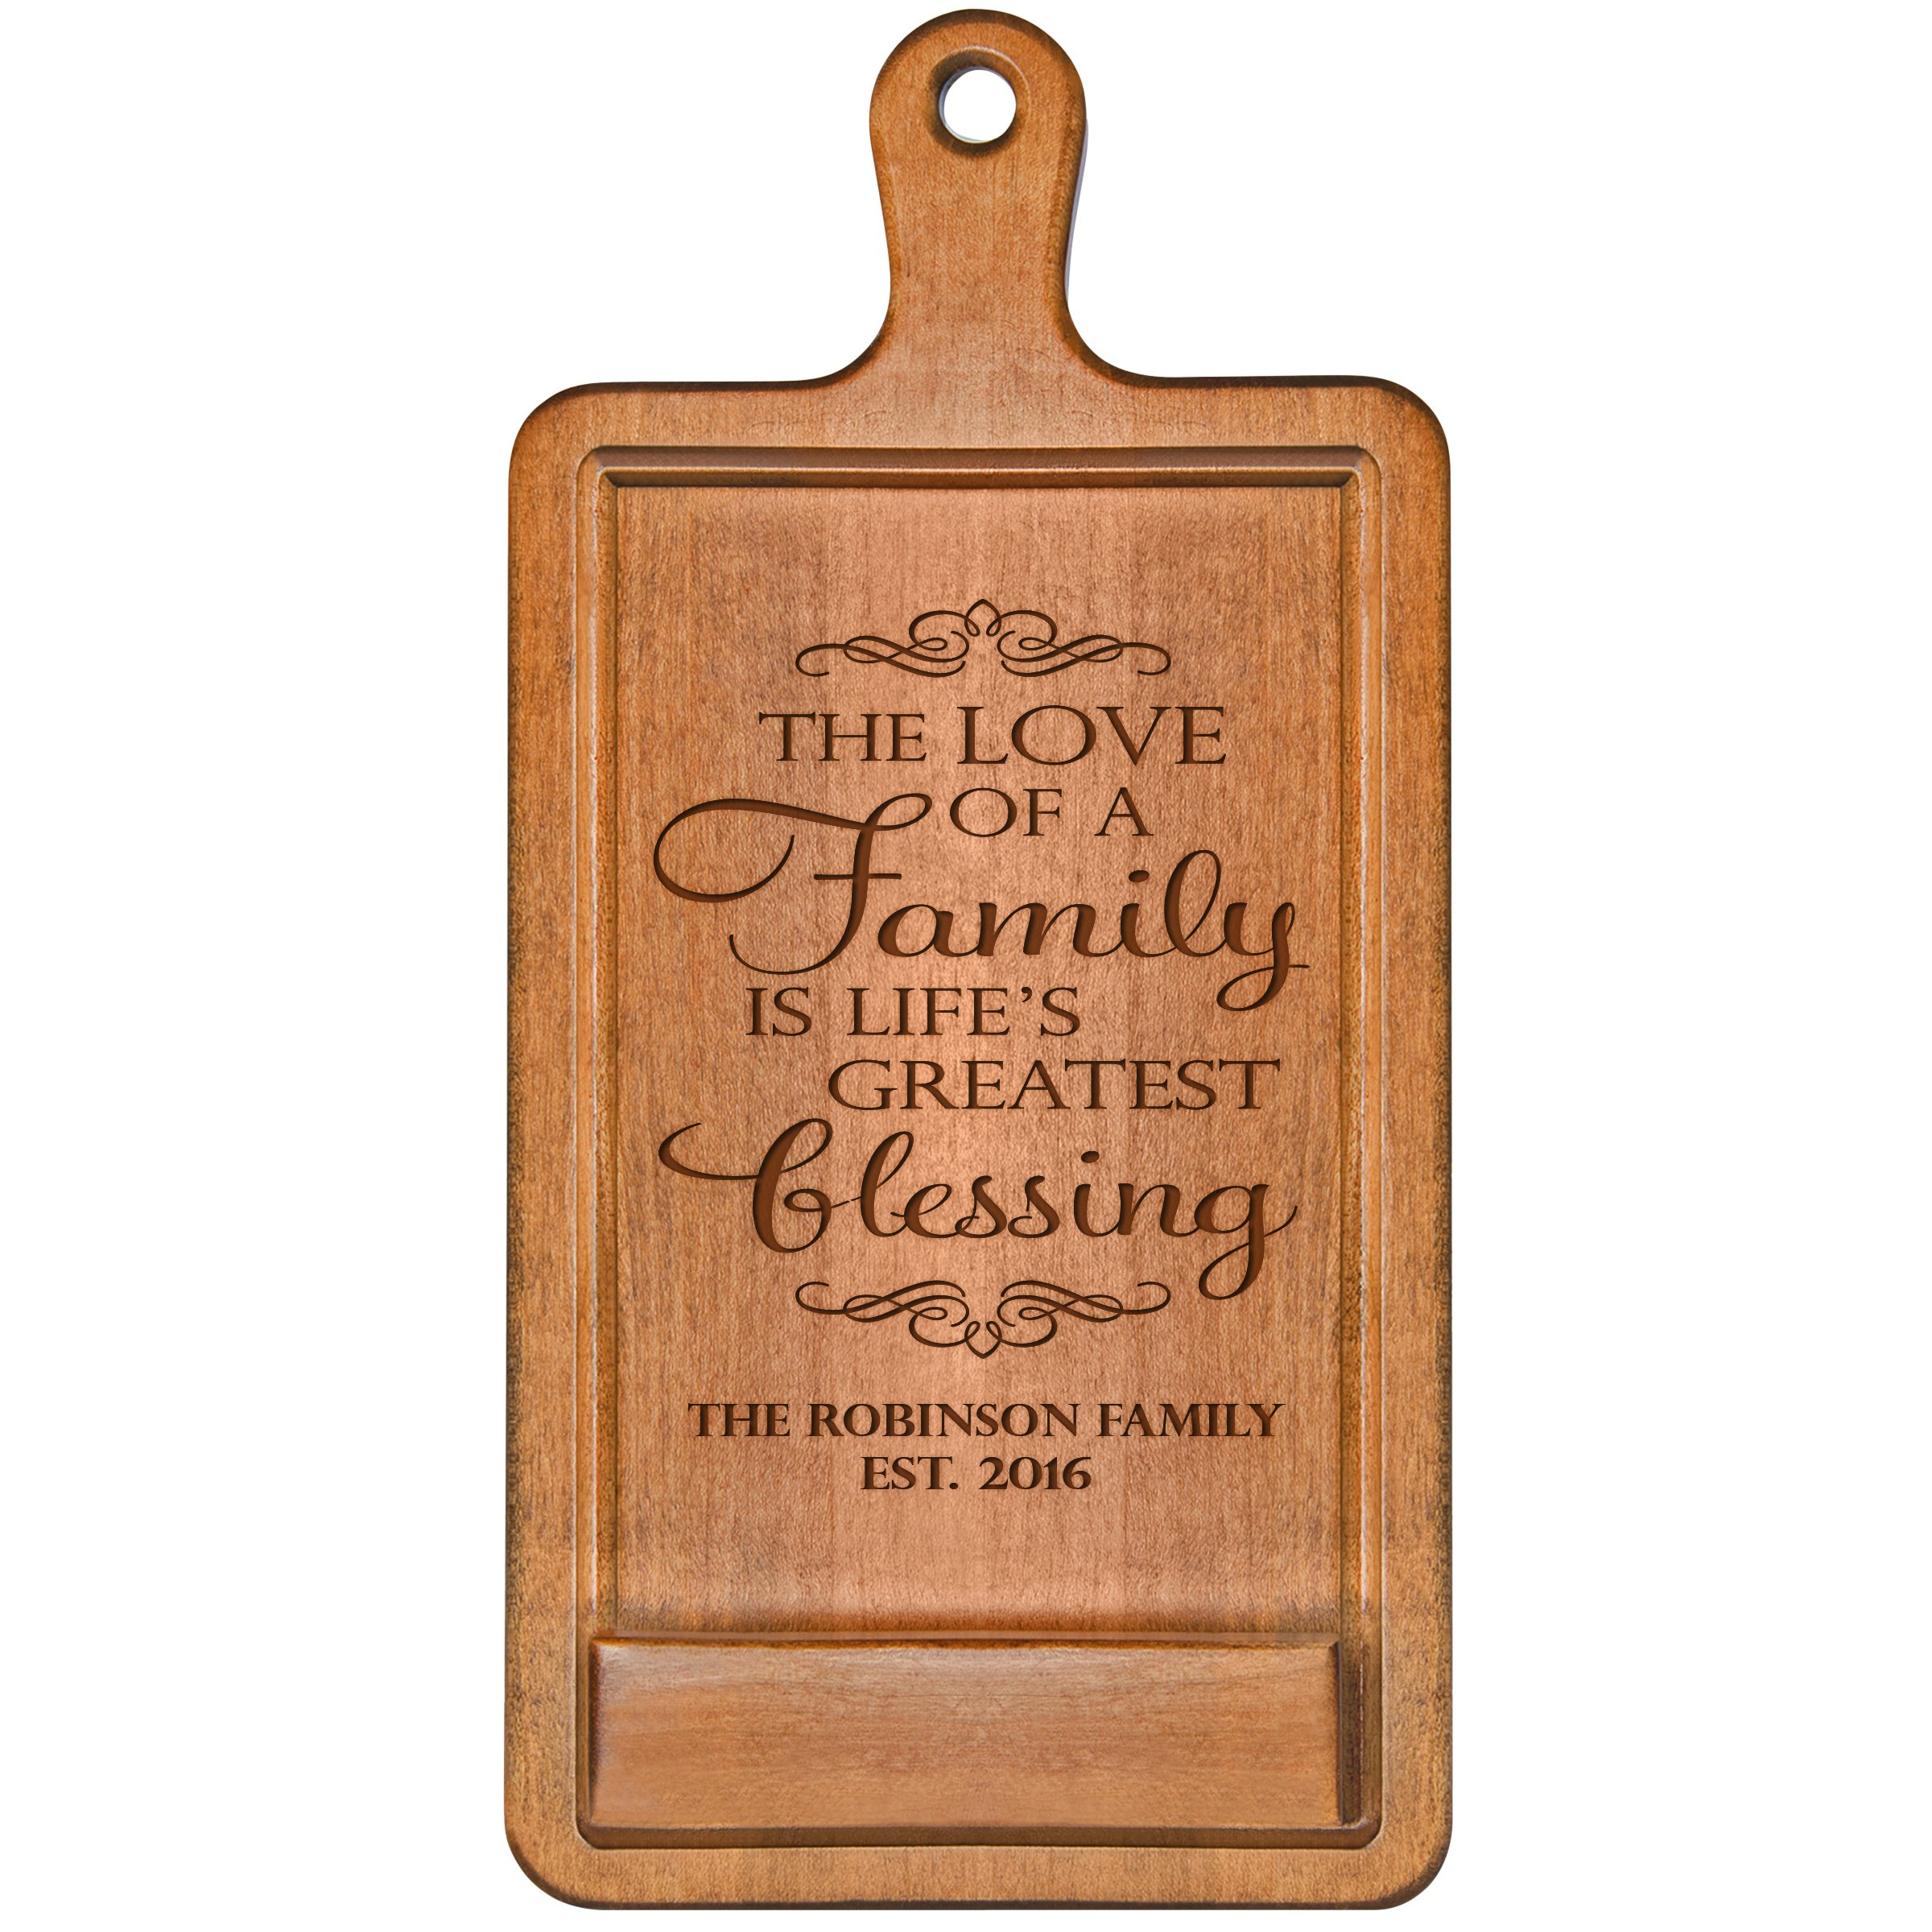 Personalized Cherry iPad Cook book Recipe holder with stand under counter for Kitchen with Family Name and Year Established date The love of a family Wedding Gift ideas for Him Her Couple